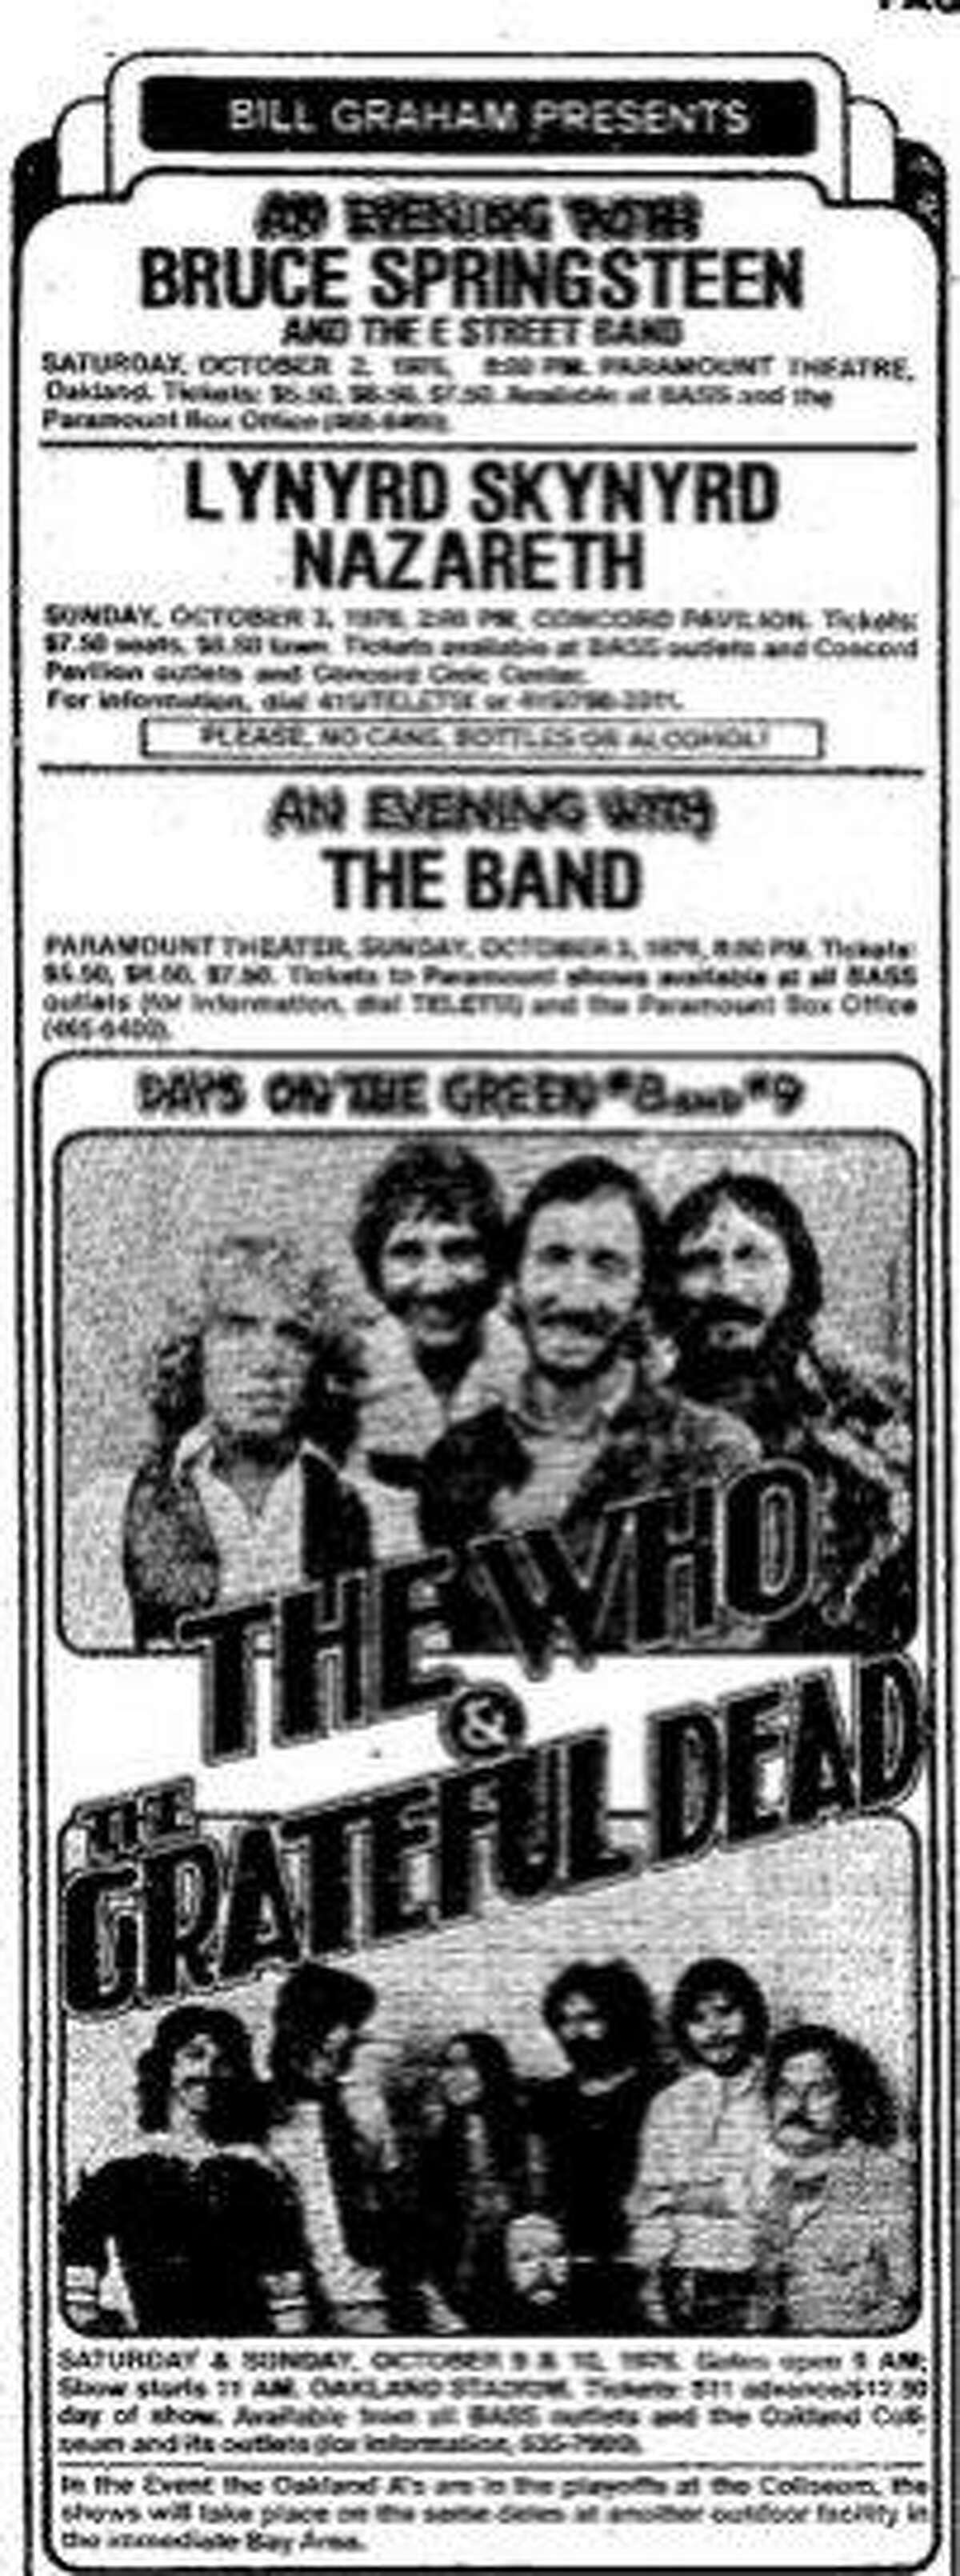 Ad for the The Who and Grateful Dead, Day on the Green concerts of October 9-10, 1976, at the Oakland Coliseum